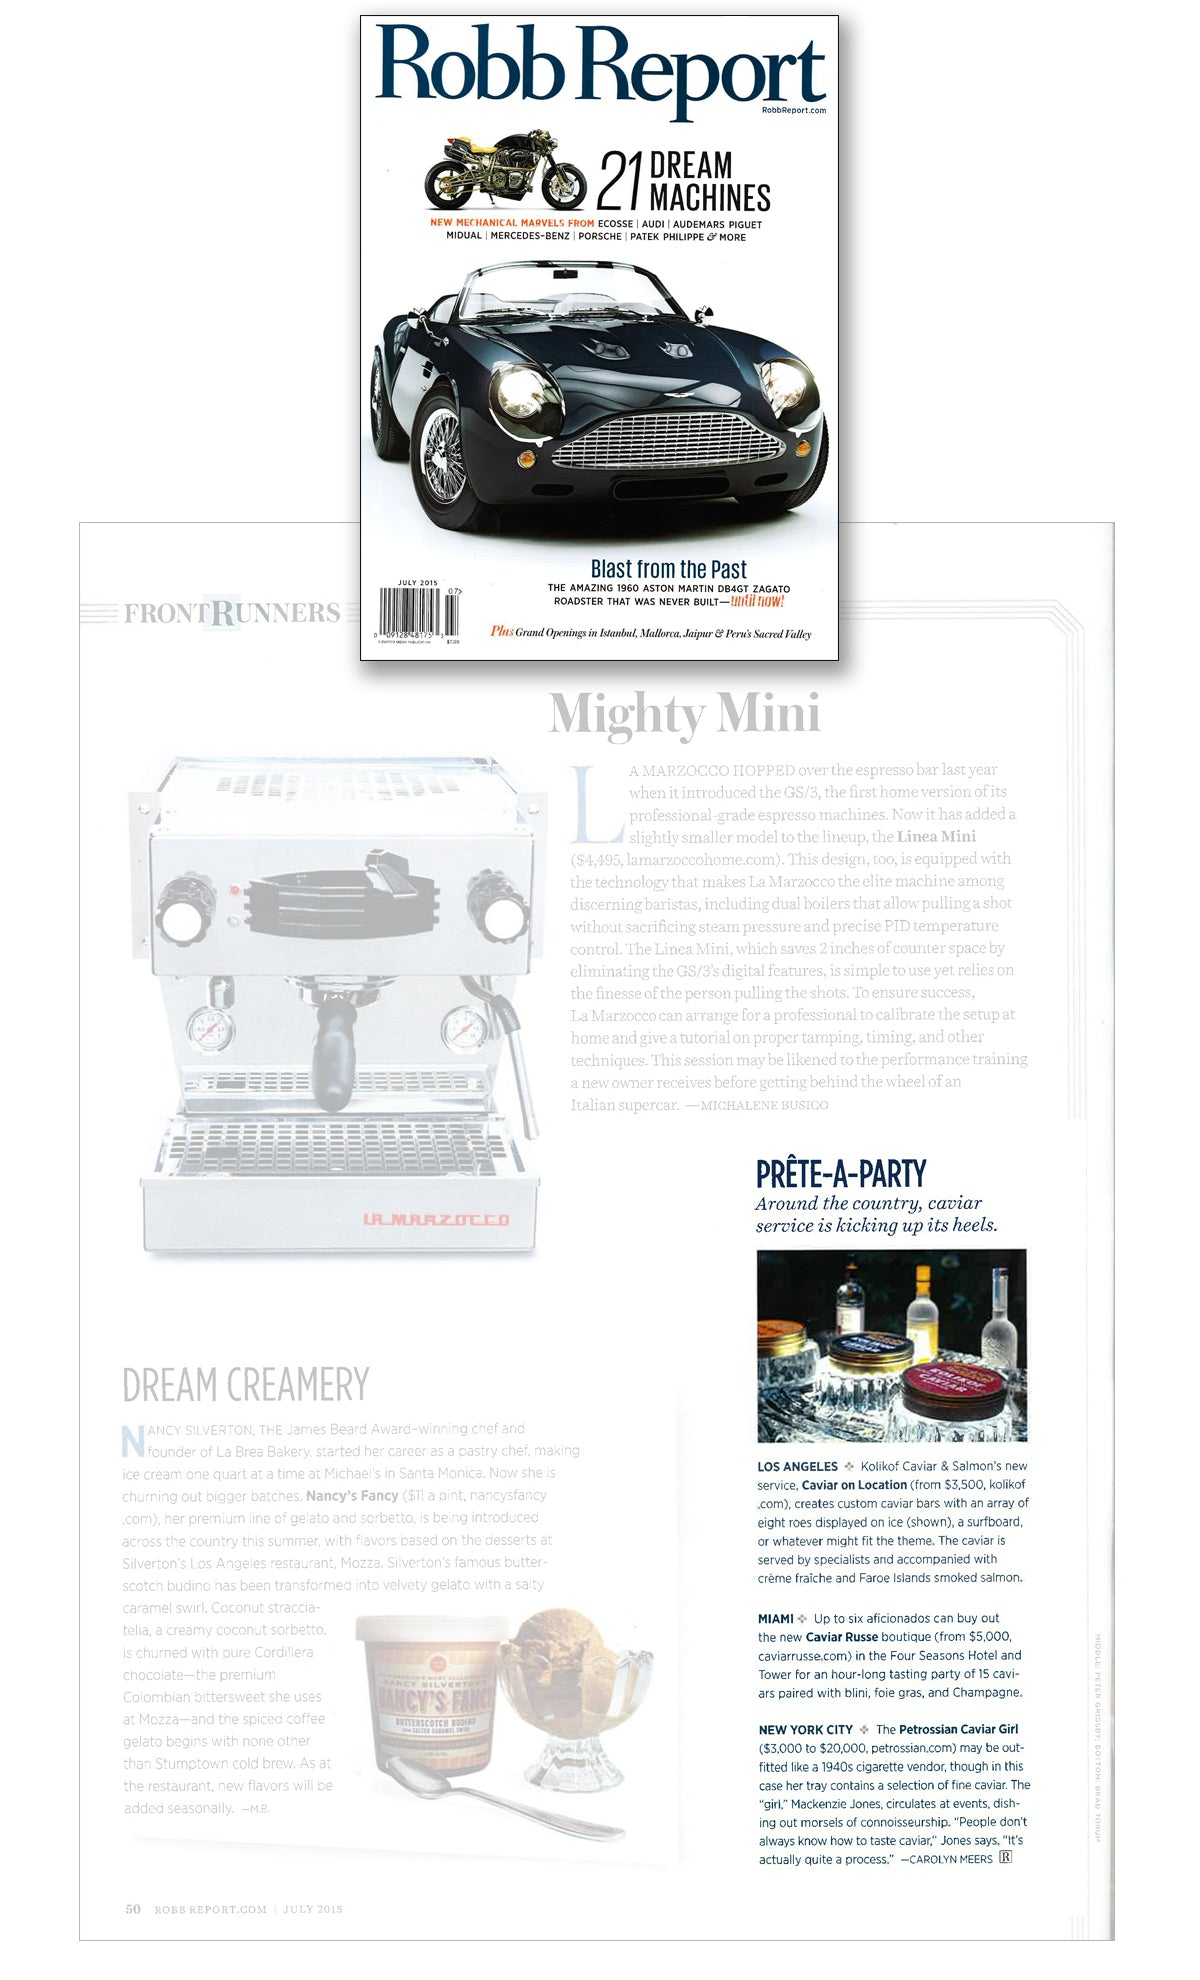 Kolikof Caviar as seen in Robb Report July Dream Machines